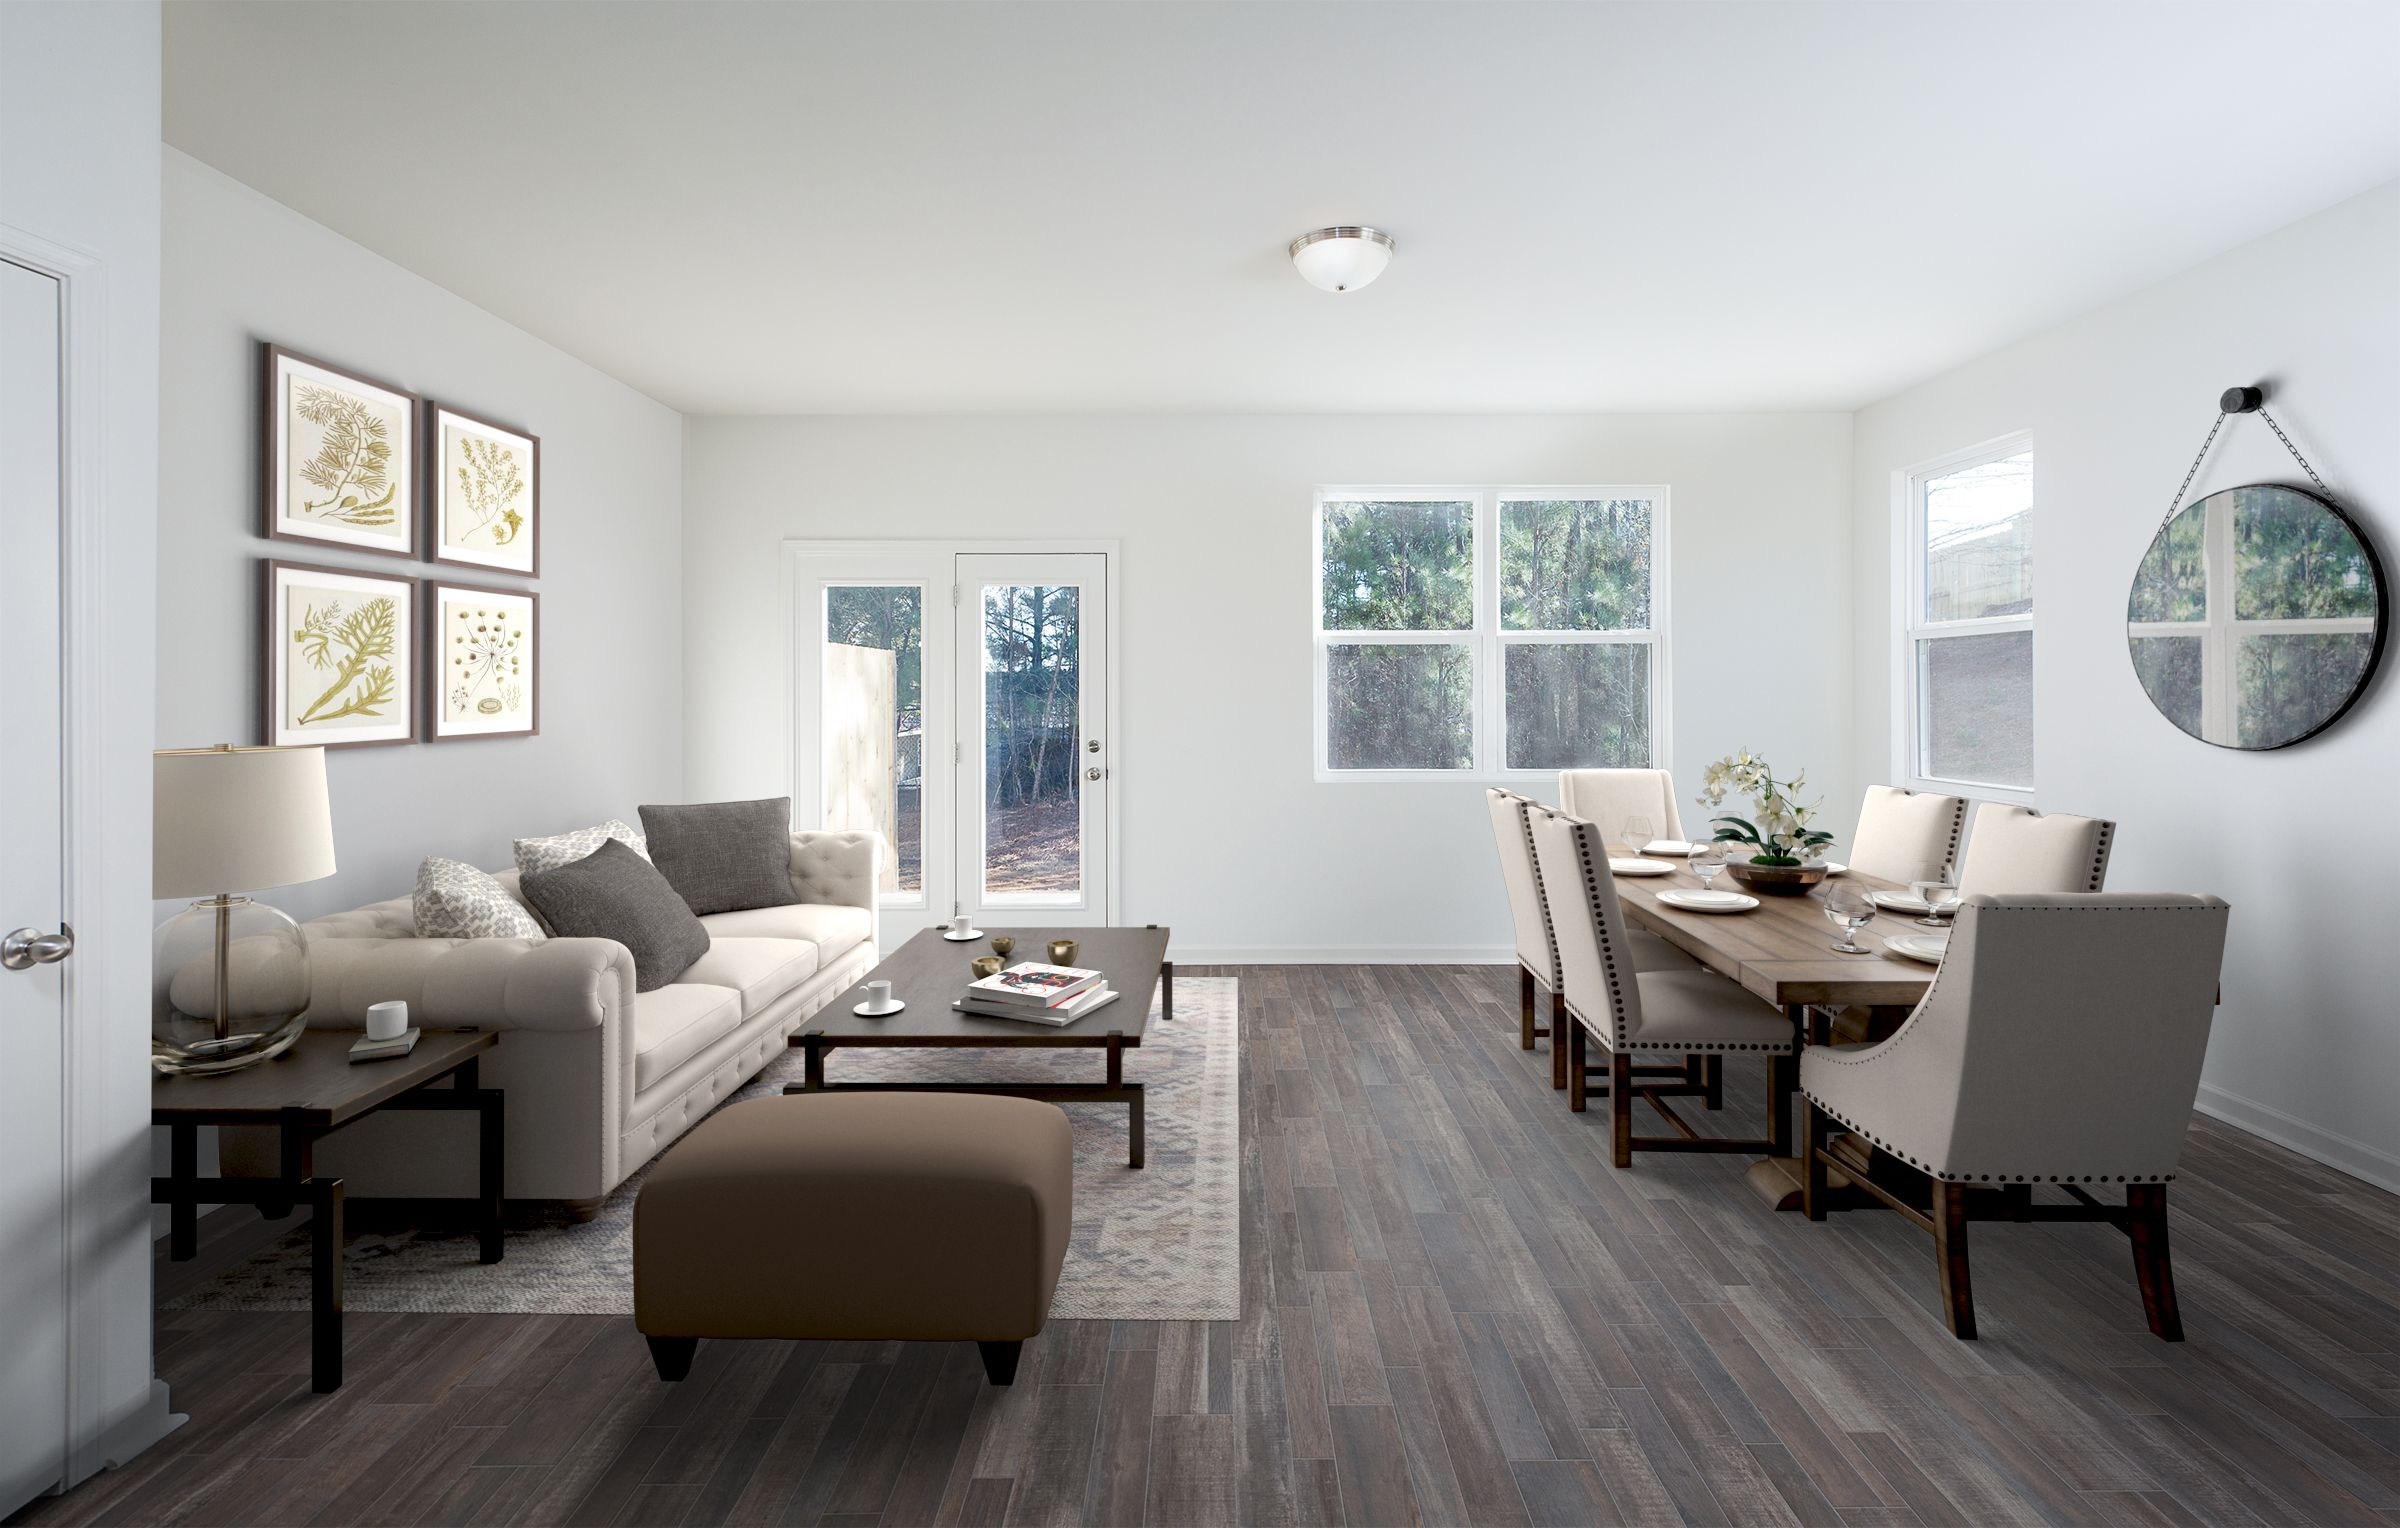 Living Area featured in the Pulsar By Starlight Homes in Atlanta, GA